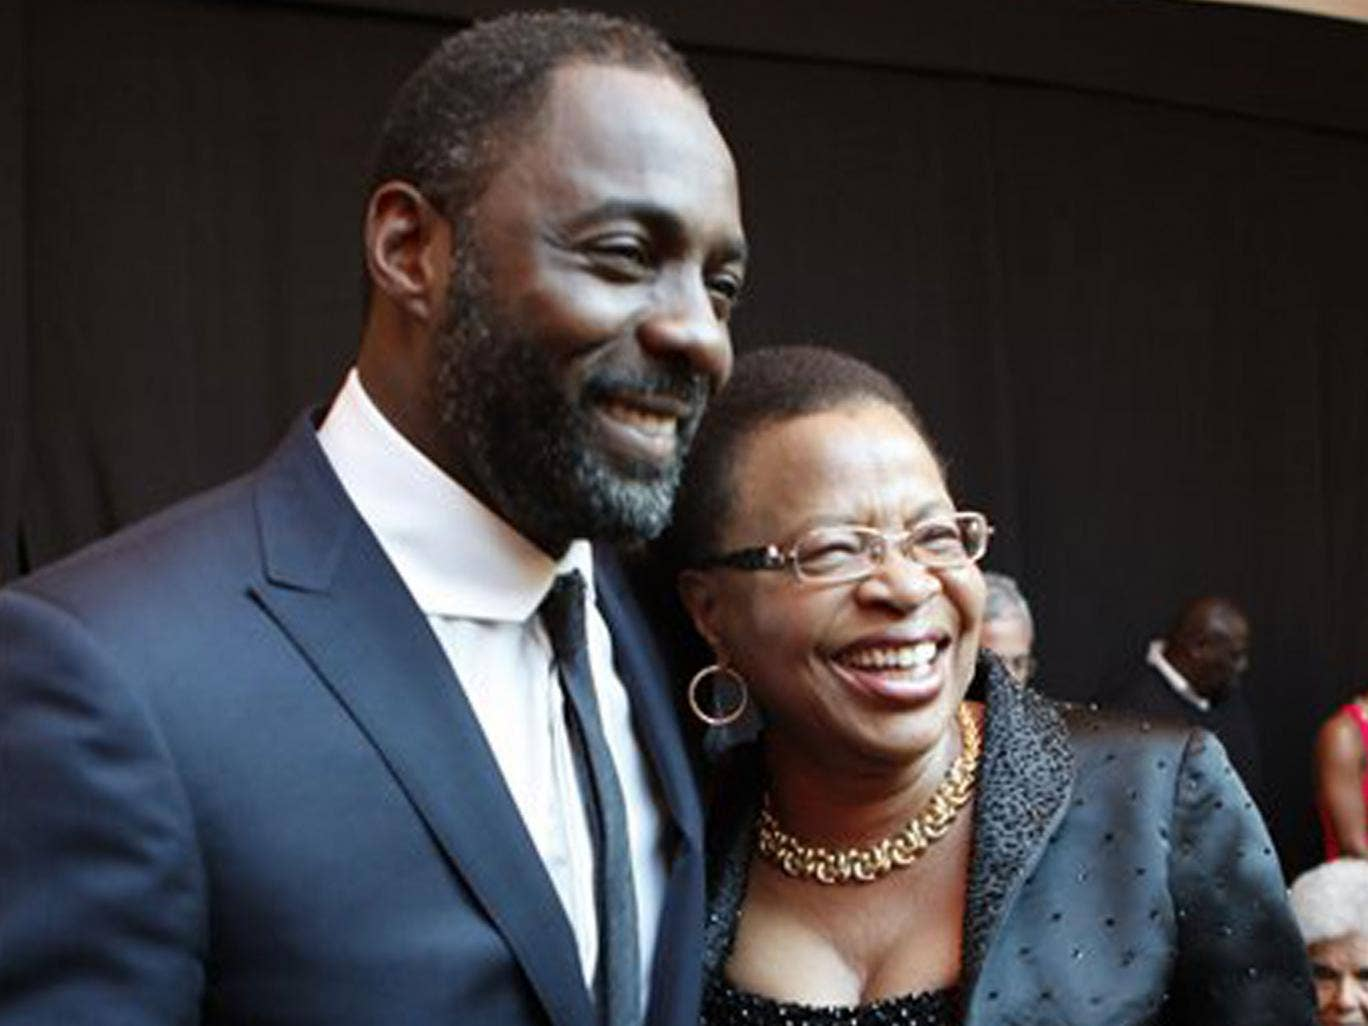 Idris Elba with Graca Machel, the wife of former South African President Nelson Mandela, at the premiere of Mandela: Long Walk to Freedom in Johannesburg